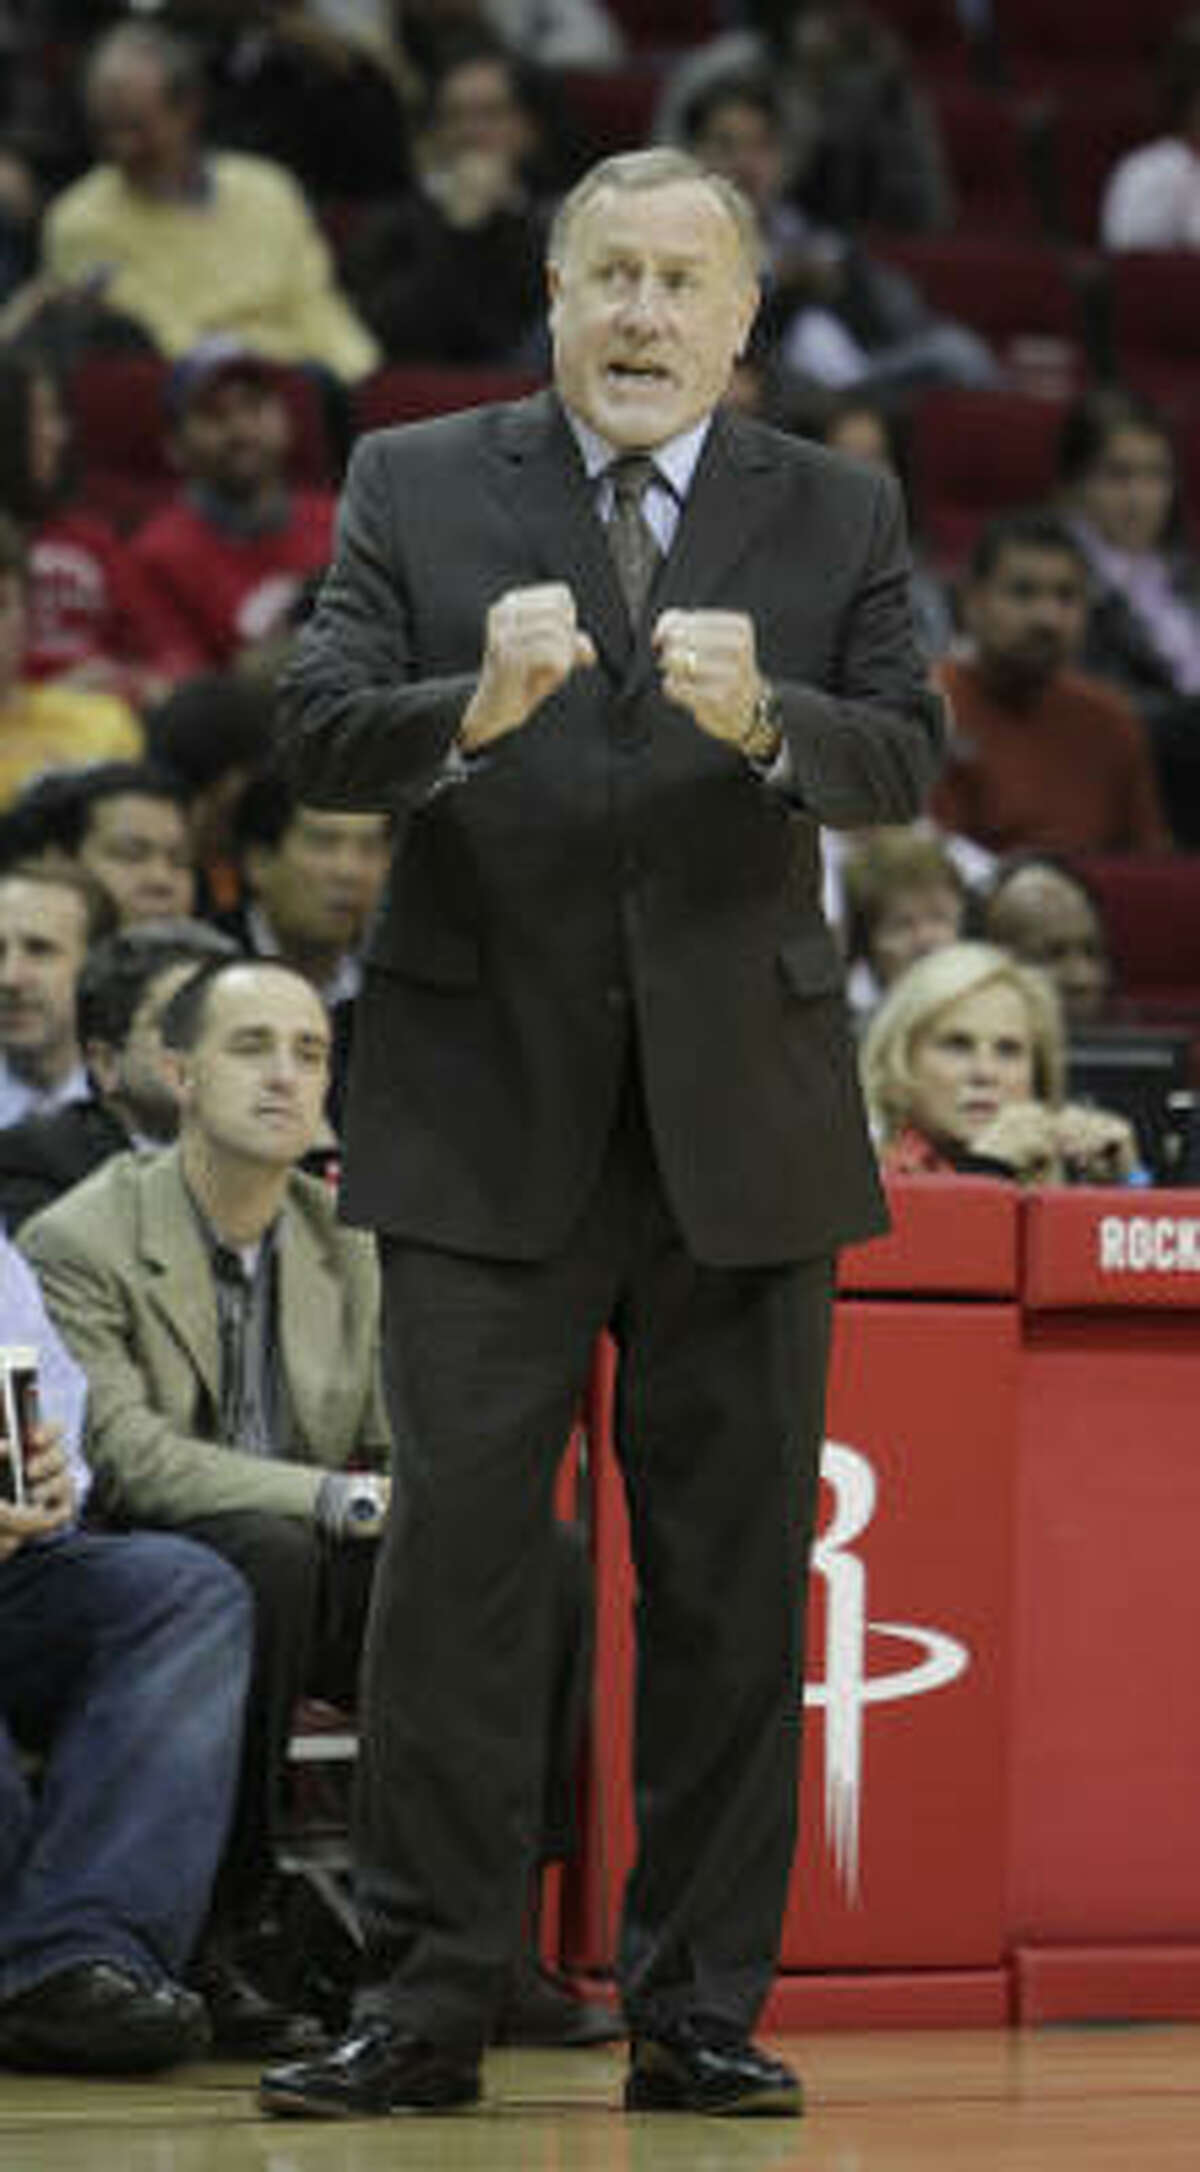 At 64, Rockets coach Rick Adelman has the energy for his job, but he may opt to retire.